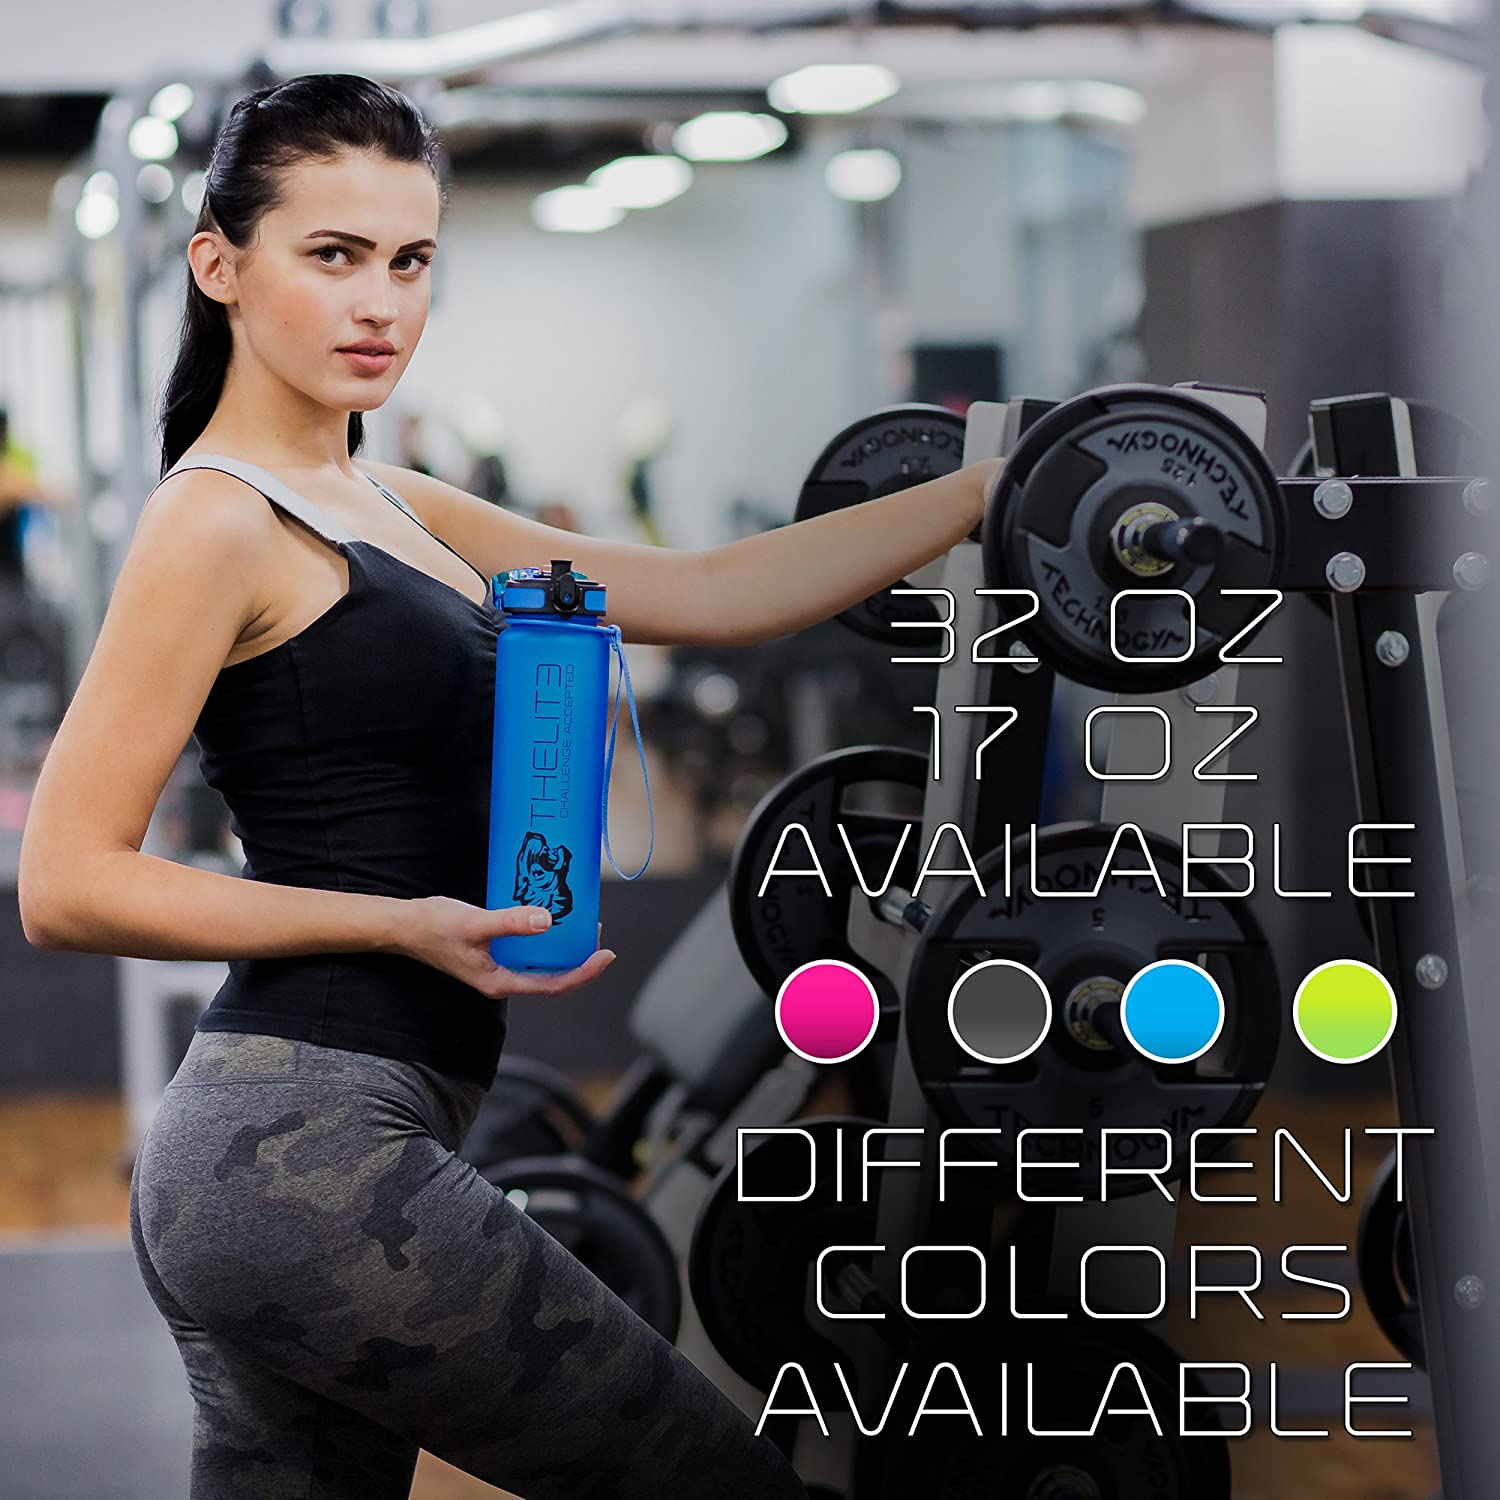 THELITE 17OZ Best Sports Water Bottle US TRITAN Green Blue Gray Pink Top Premium Quality Eco Friendly BPA Free Fast Water Flow One-Click Open Leak Proof Fitness CrossFit Running Yoga Outdoors Camping